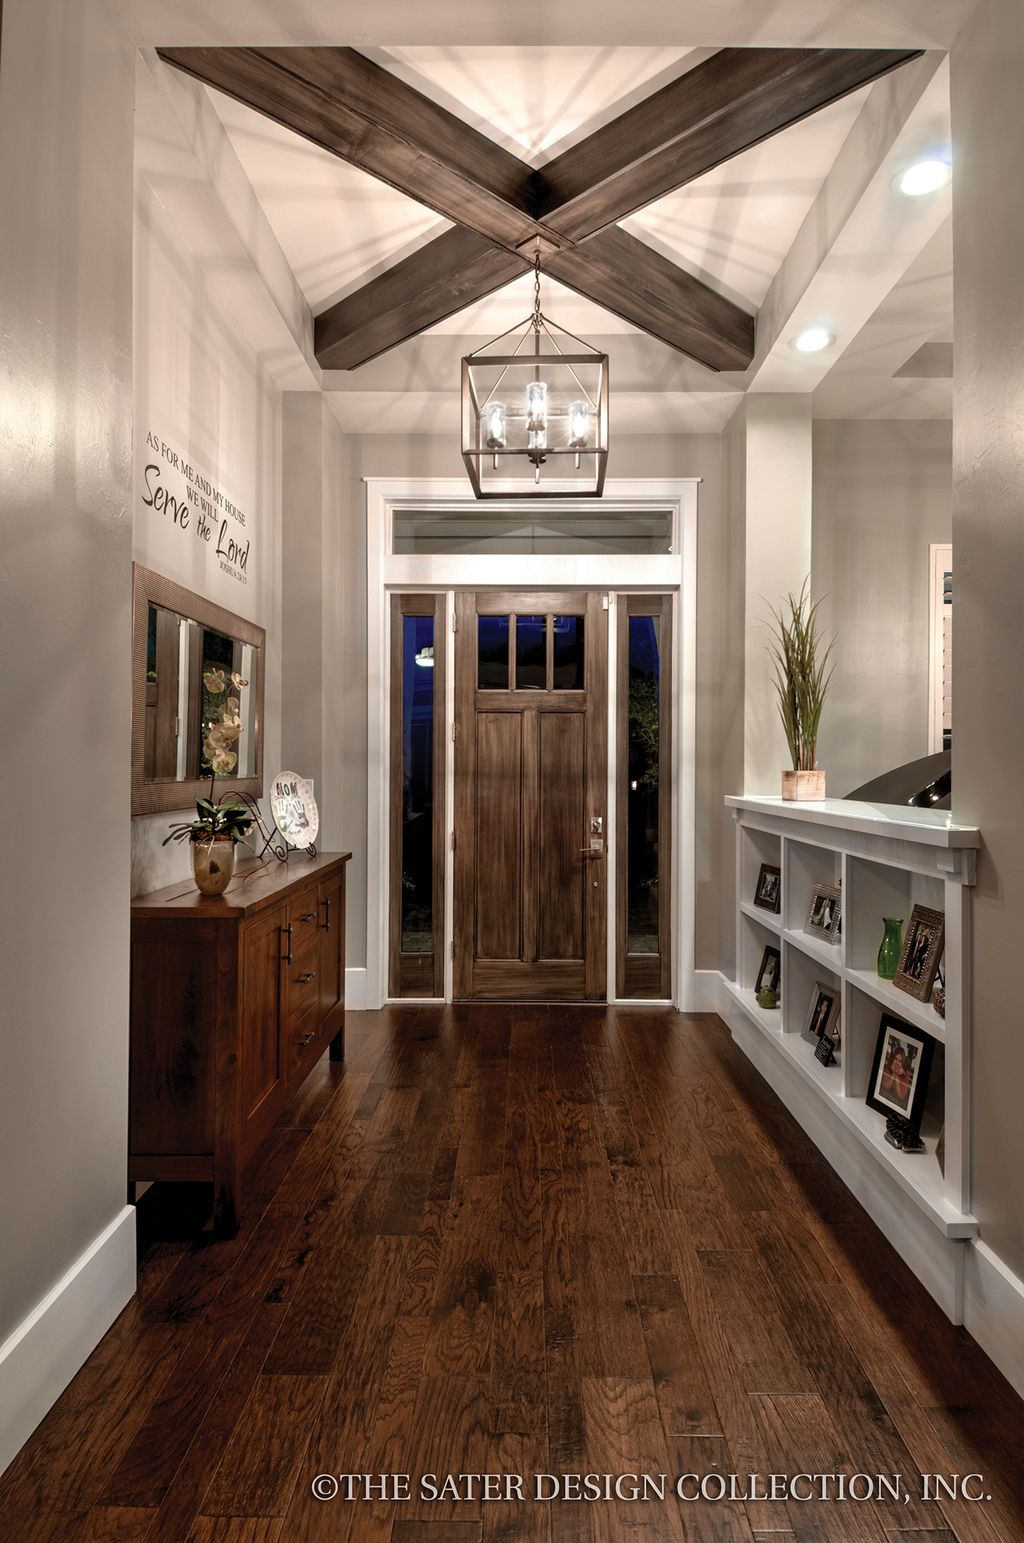 27 Welcoming Rustic Entryway Decorating Ideas That Every Guest Will Love Need More Kitchen